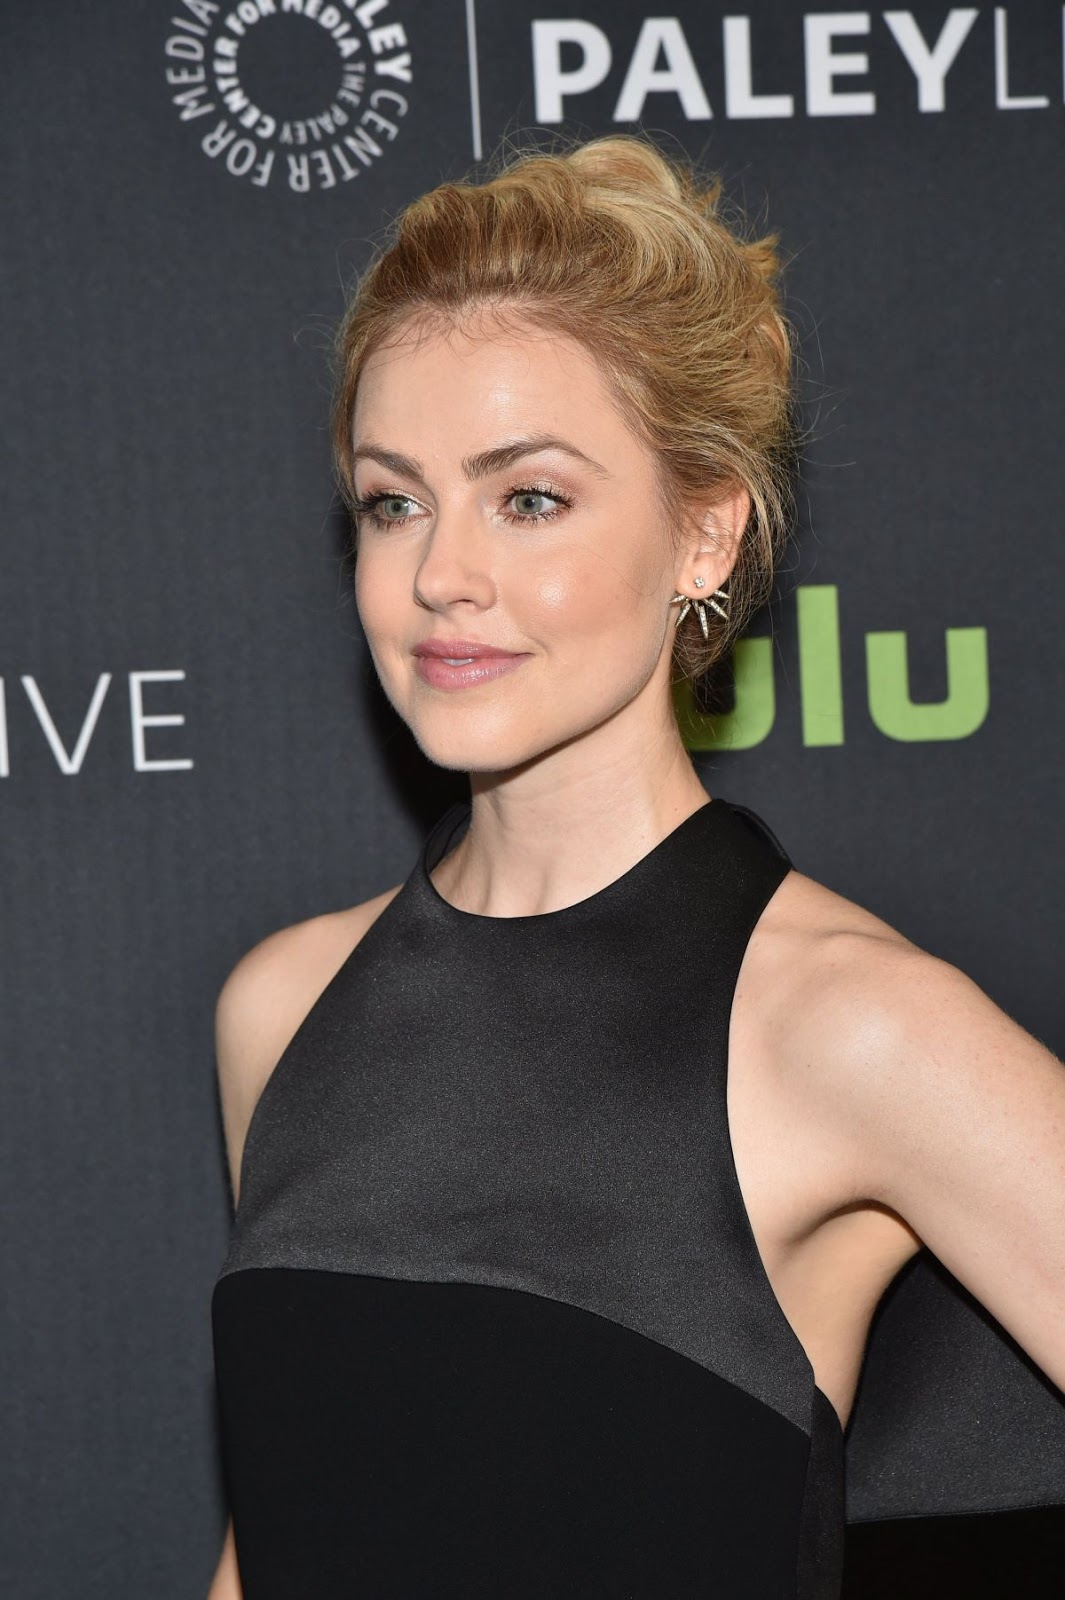 'I Am Wrath' actress Amanda Schull at Paleylive La an Evening With 12 Monkeys in Beverly Hills